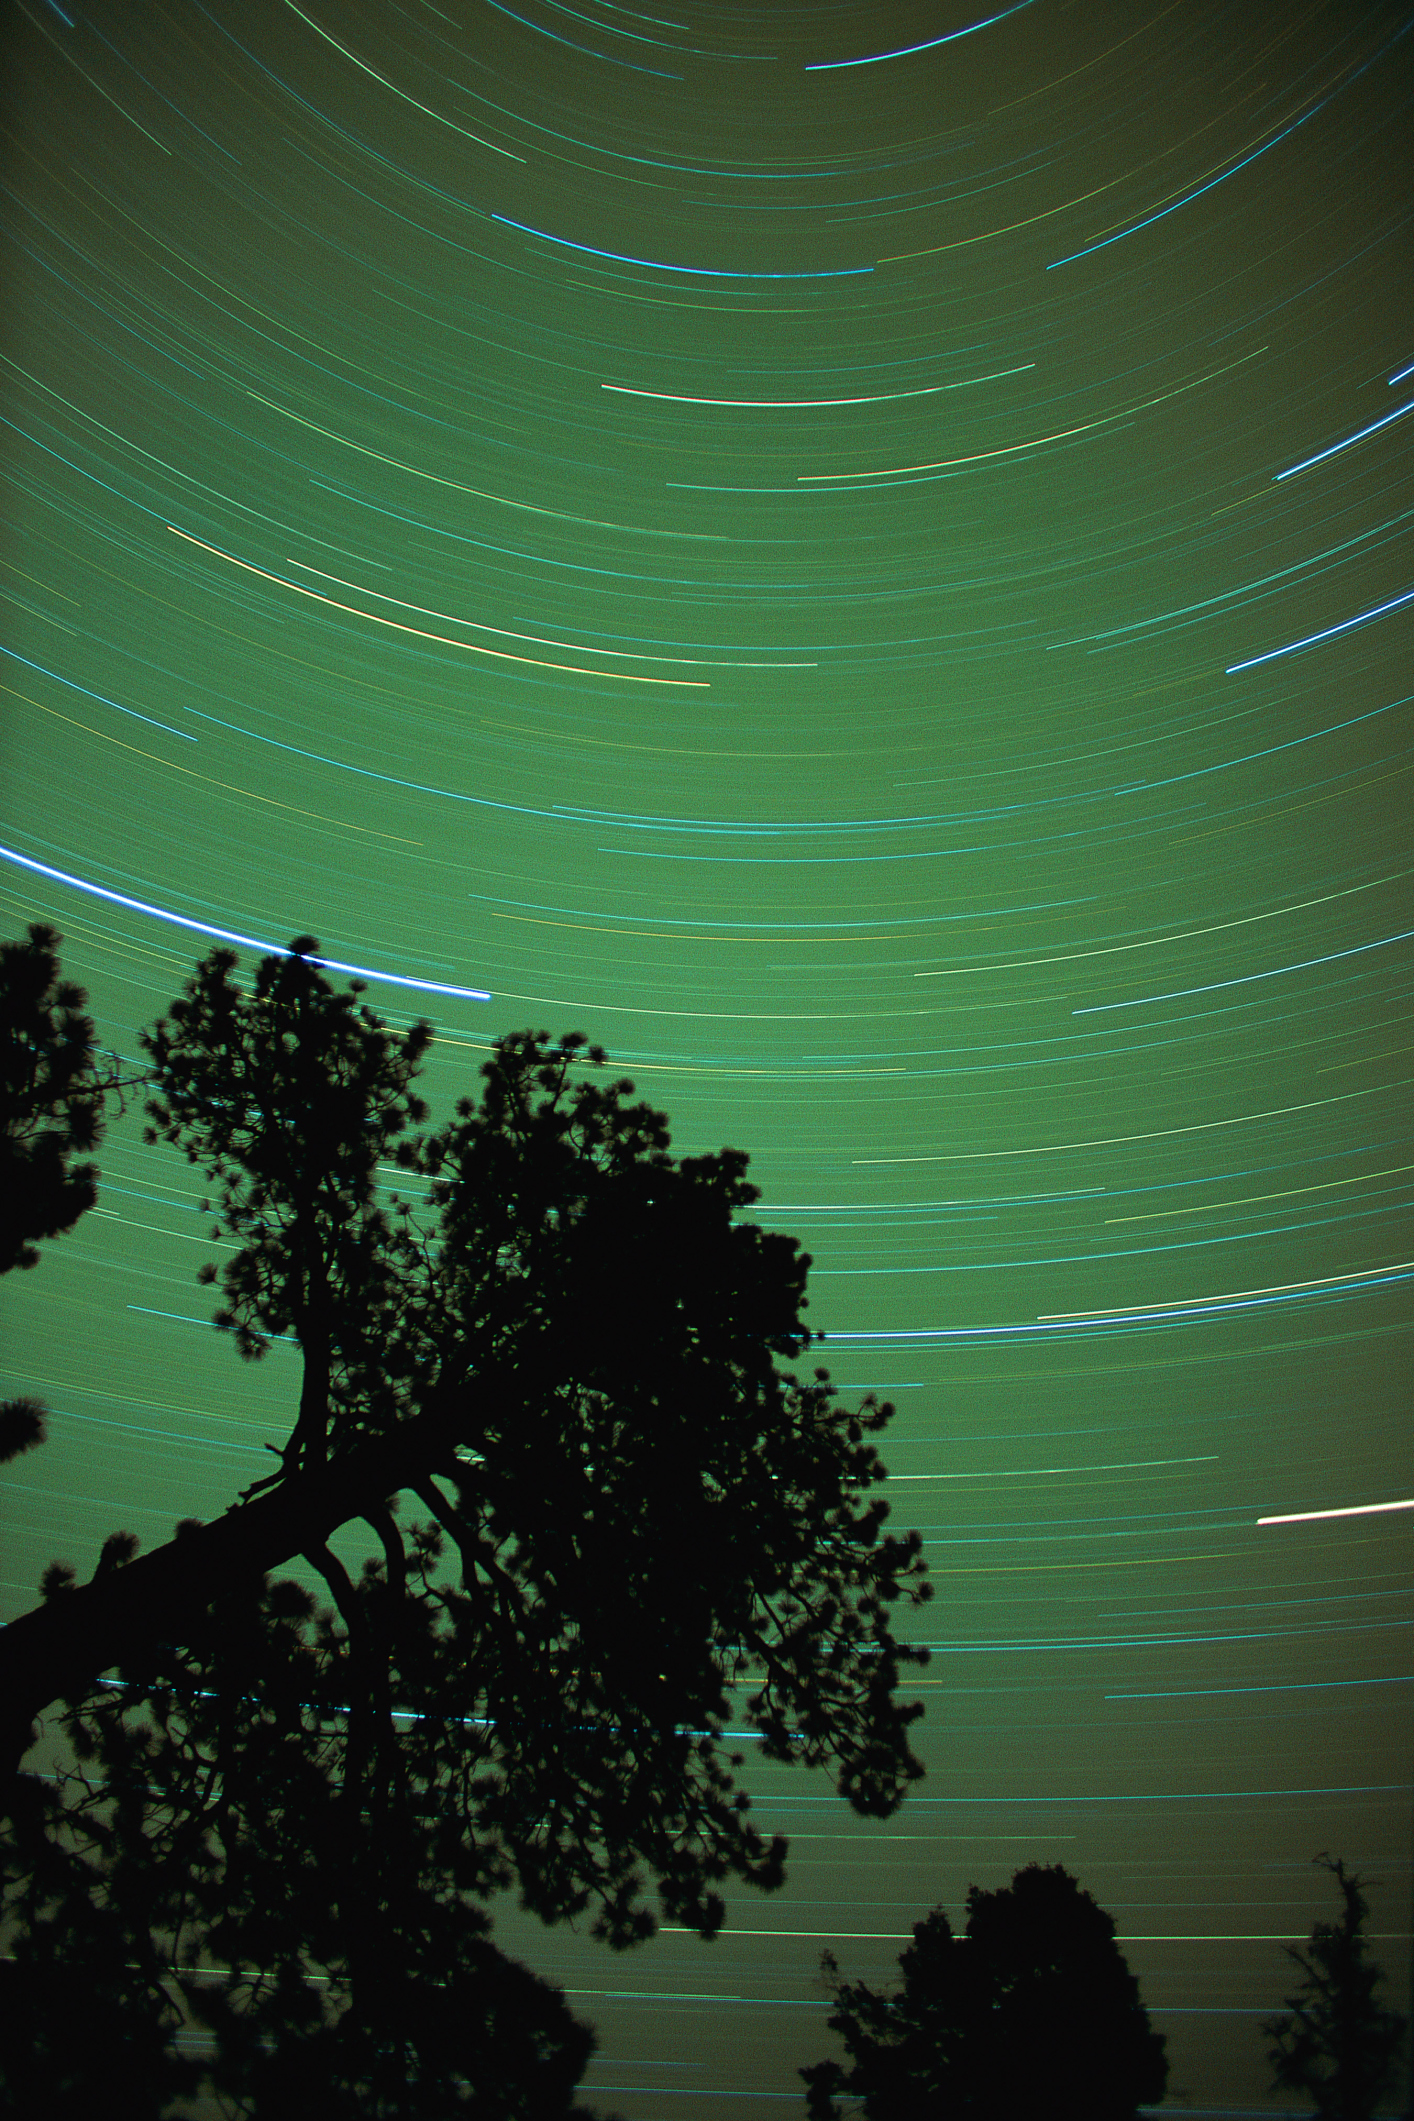 How to Locate Orion's Belt